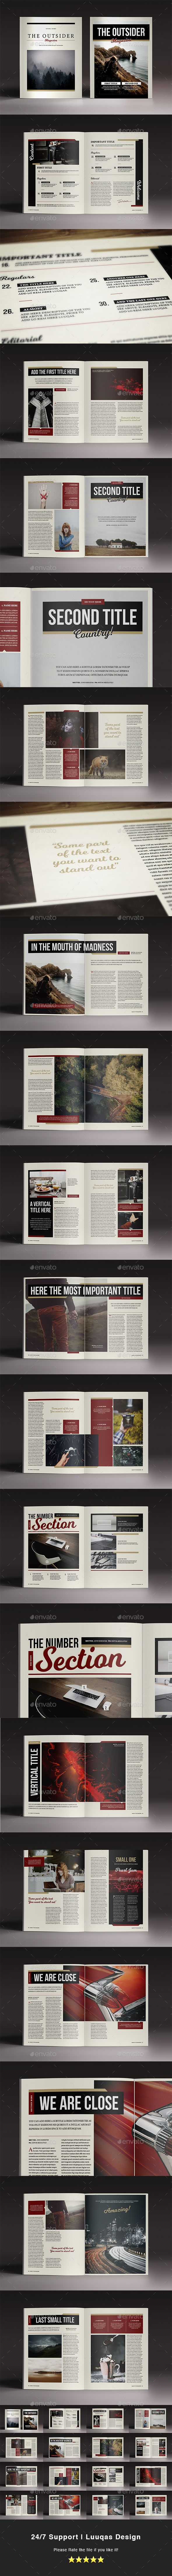 The Outsider Indesign Magazine Template - Magazines Print Templates